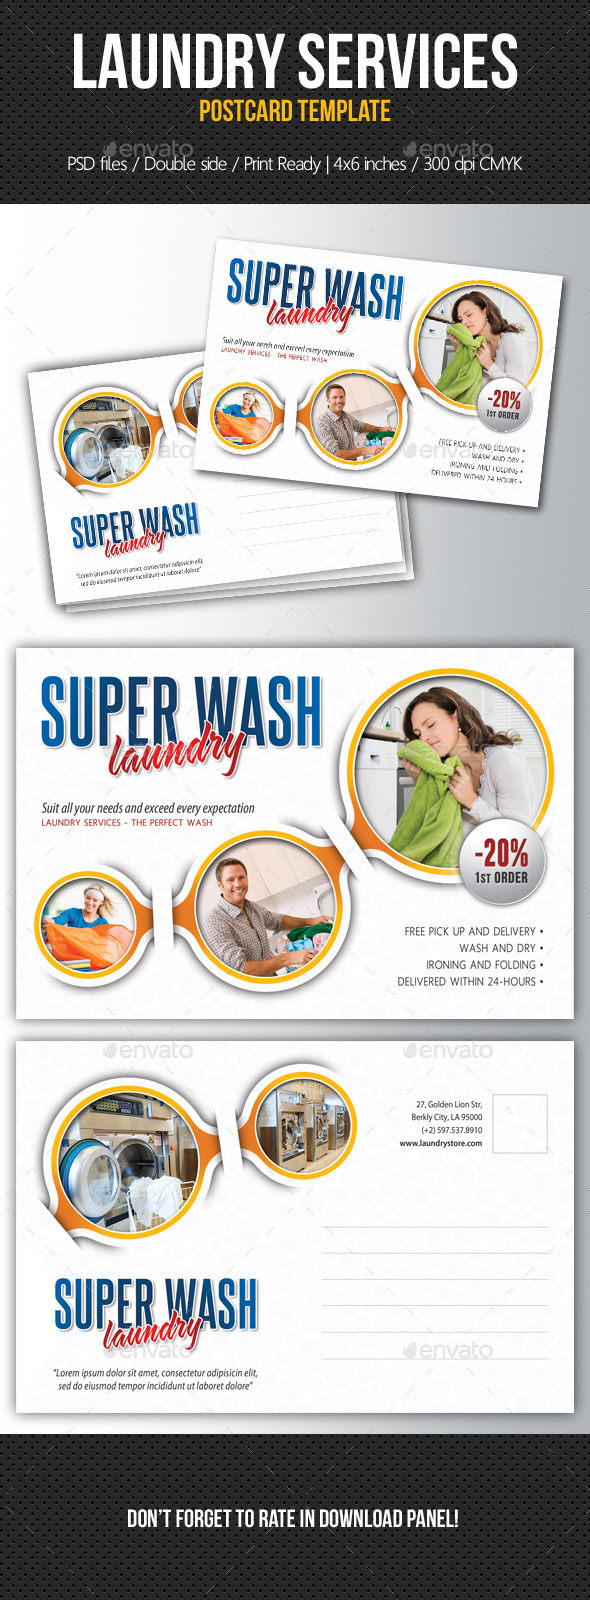 Laundry Services Postcard Template V02 - Cards & Invites Print Templates